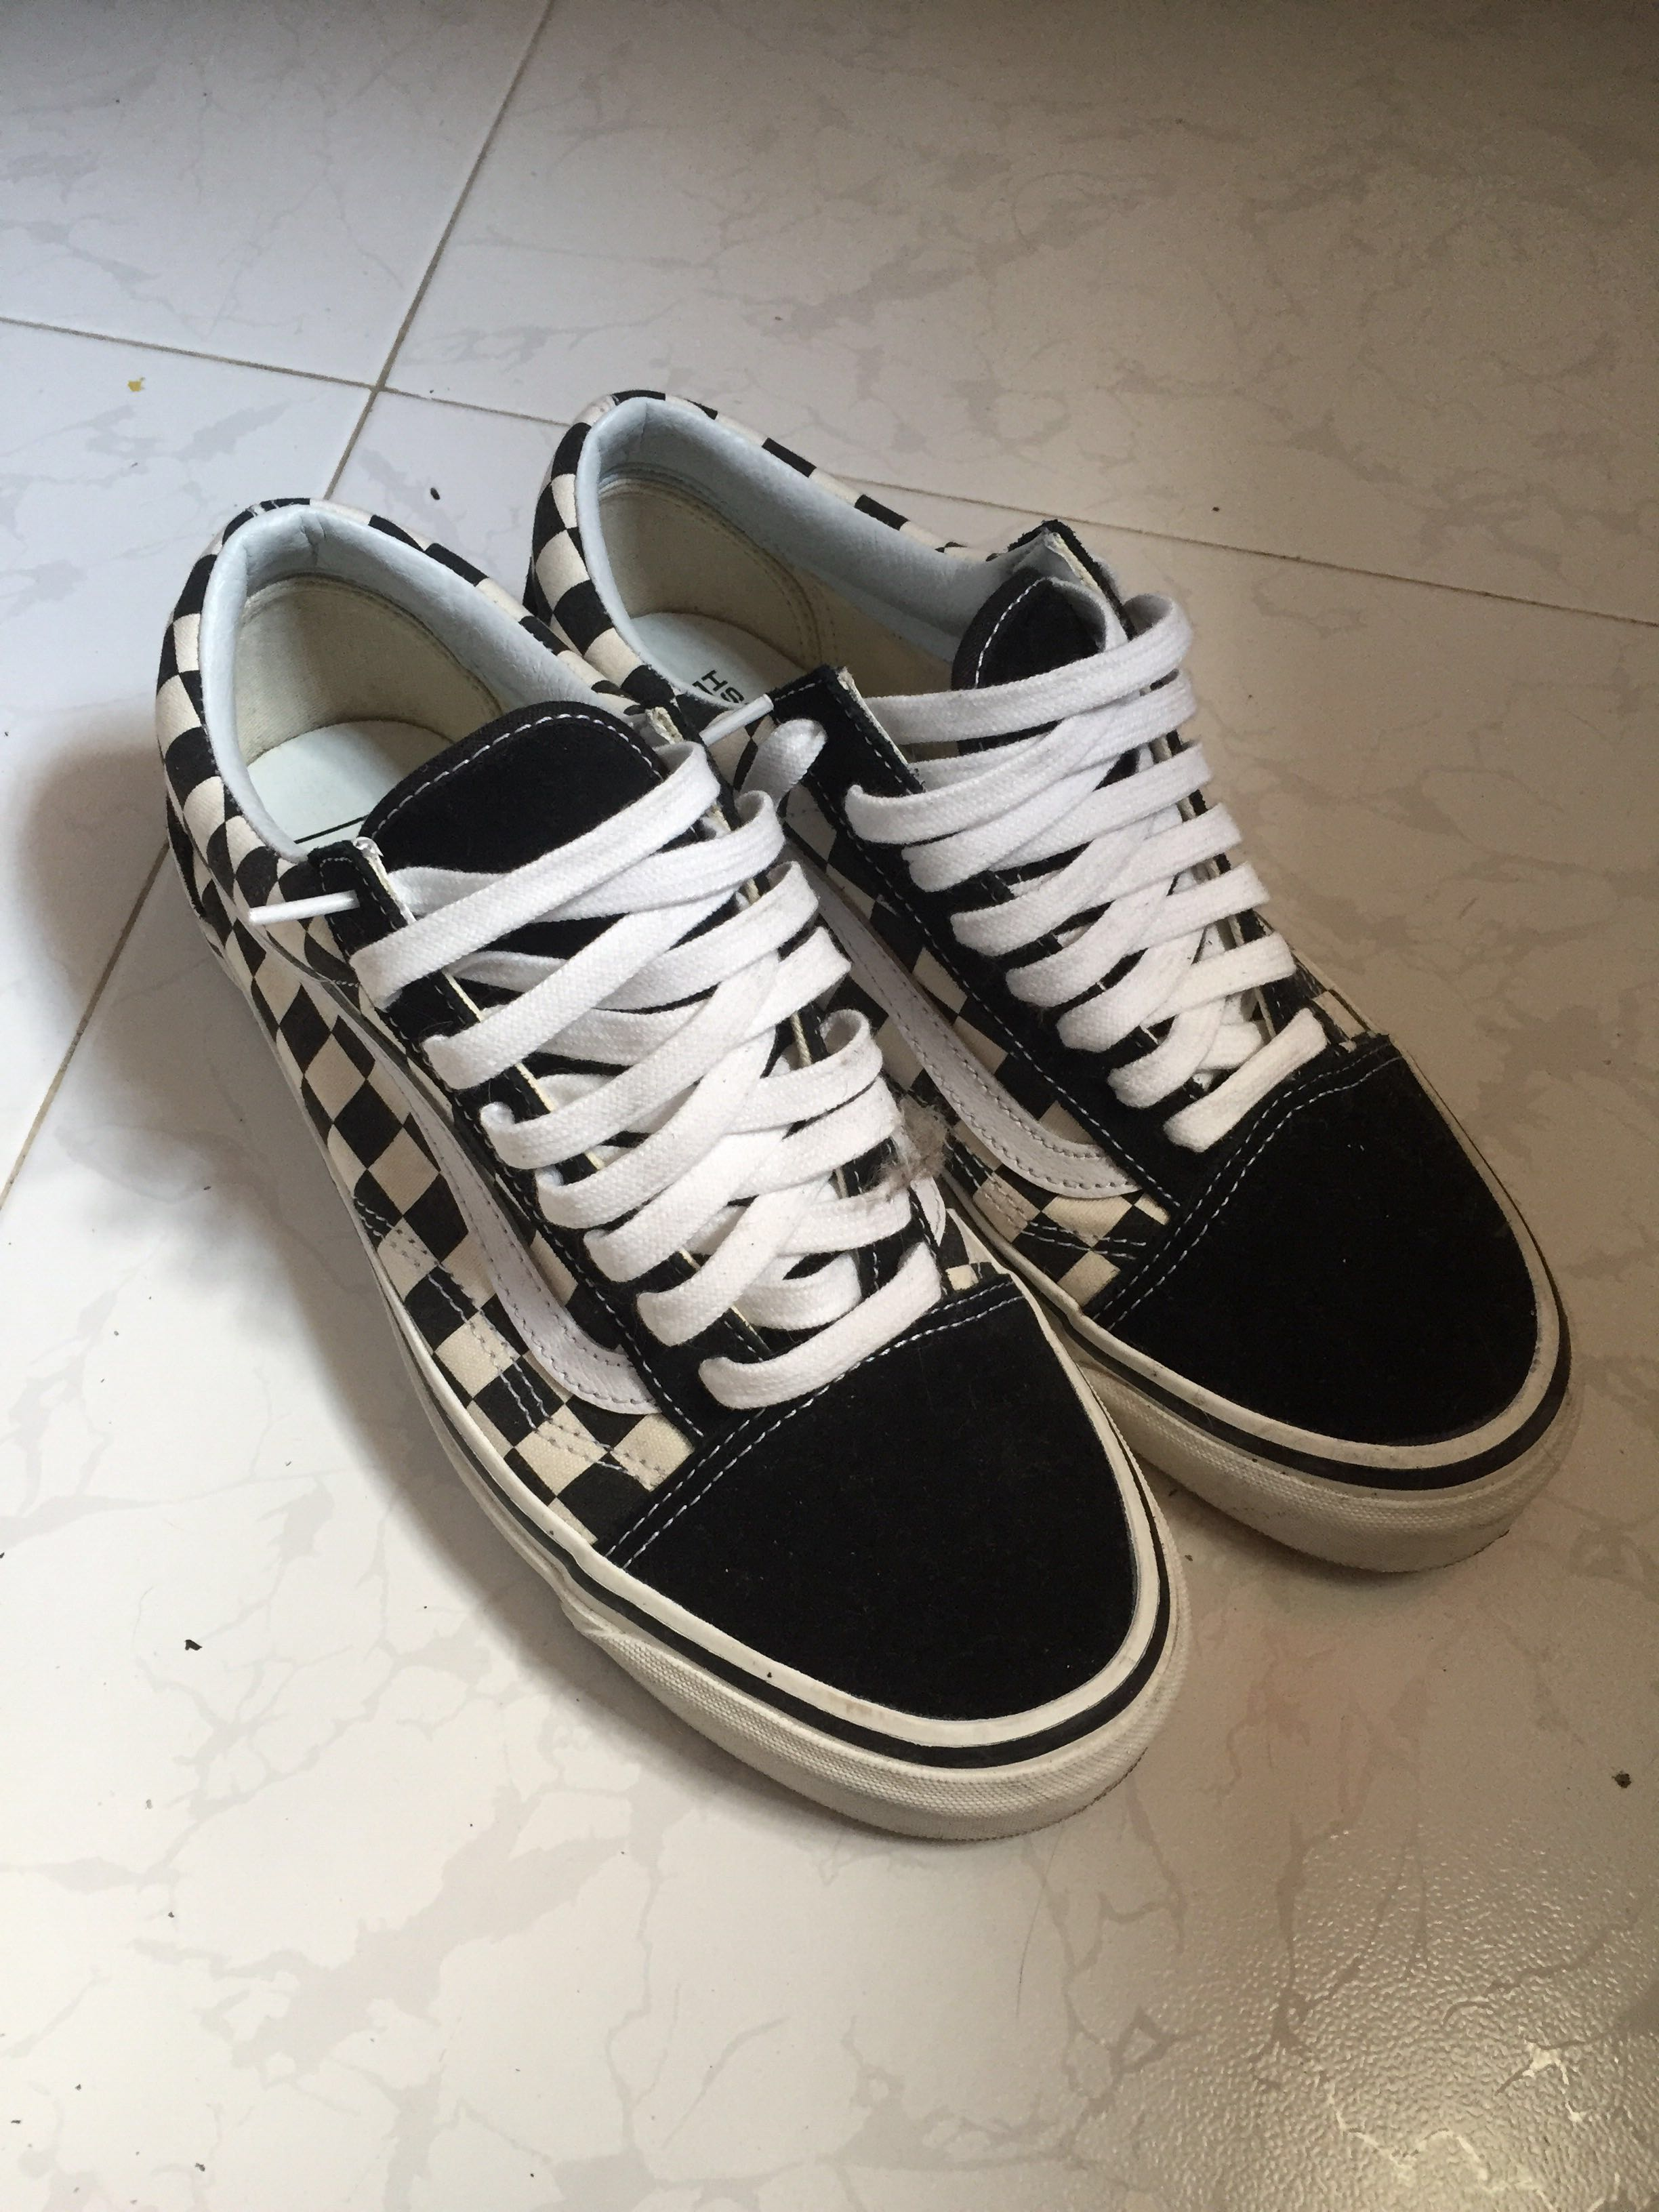 423ccdccc1 Vans checkered old skool 36 dx